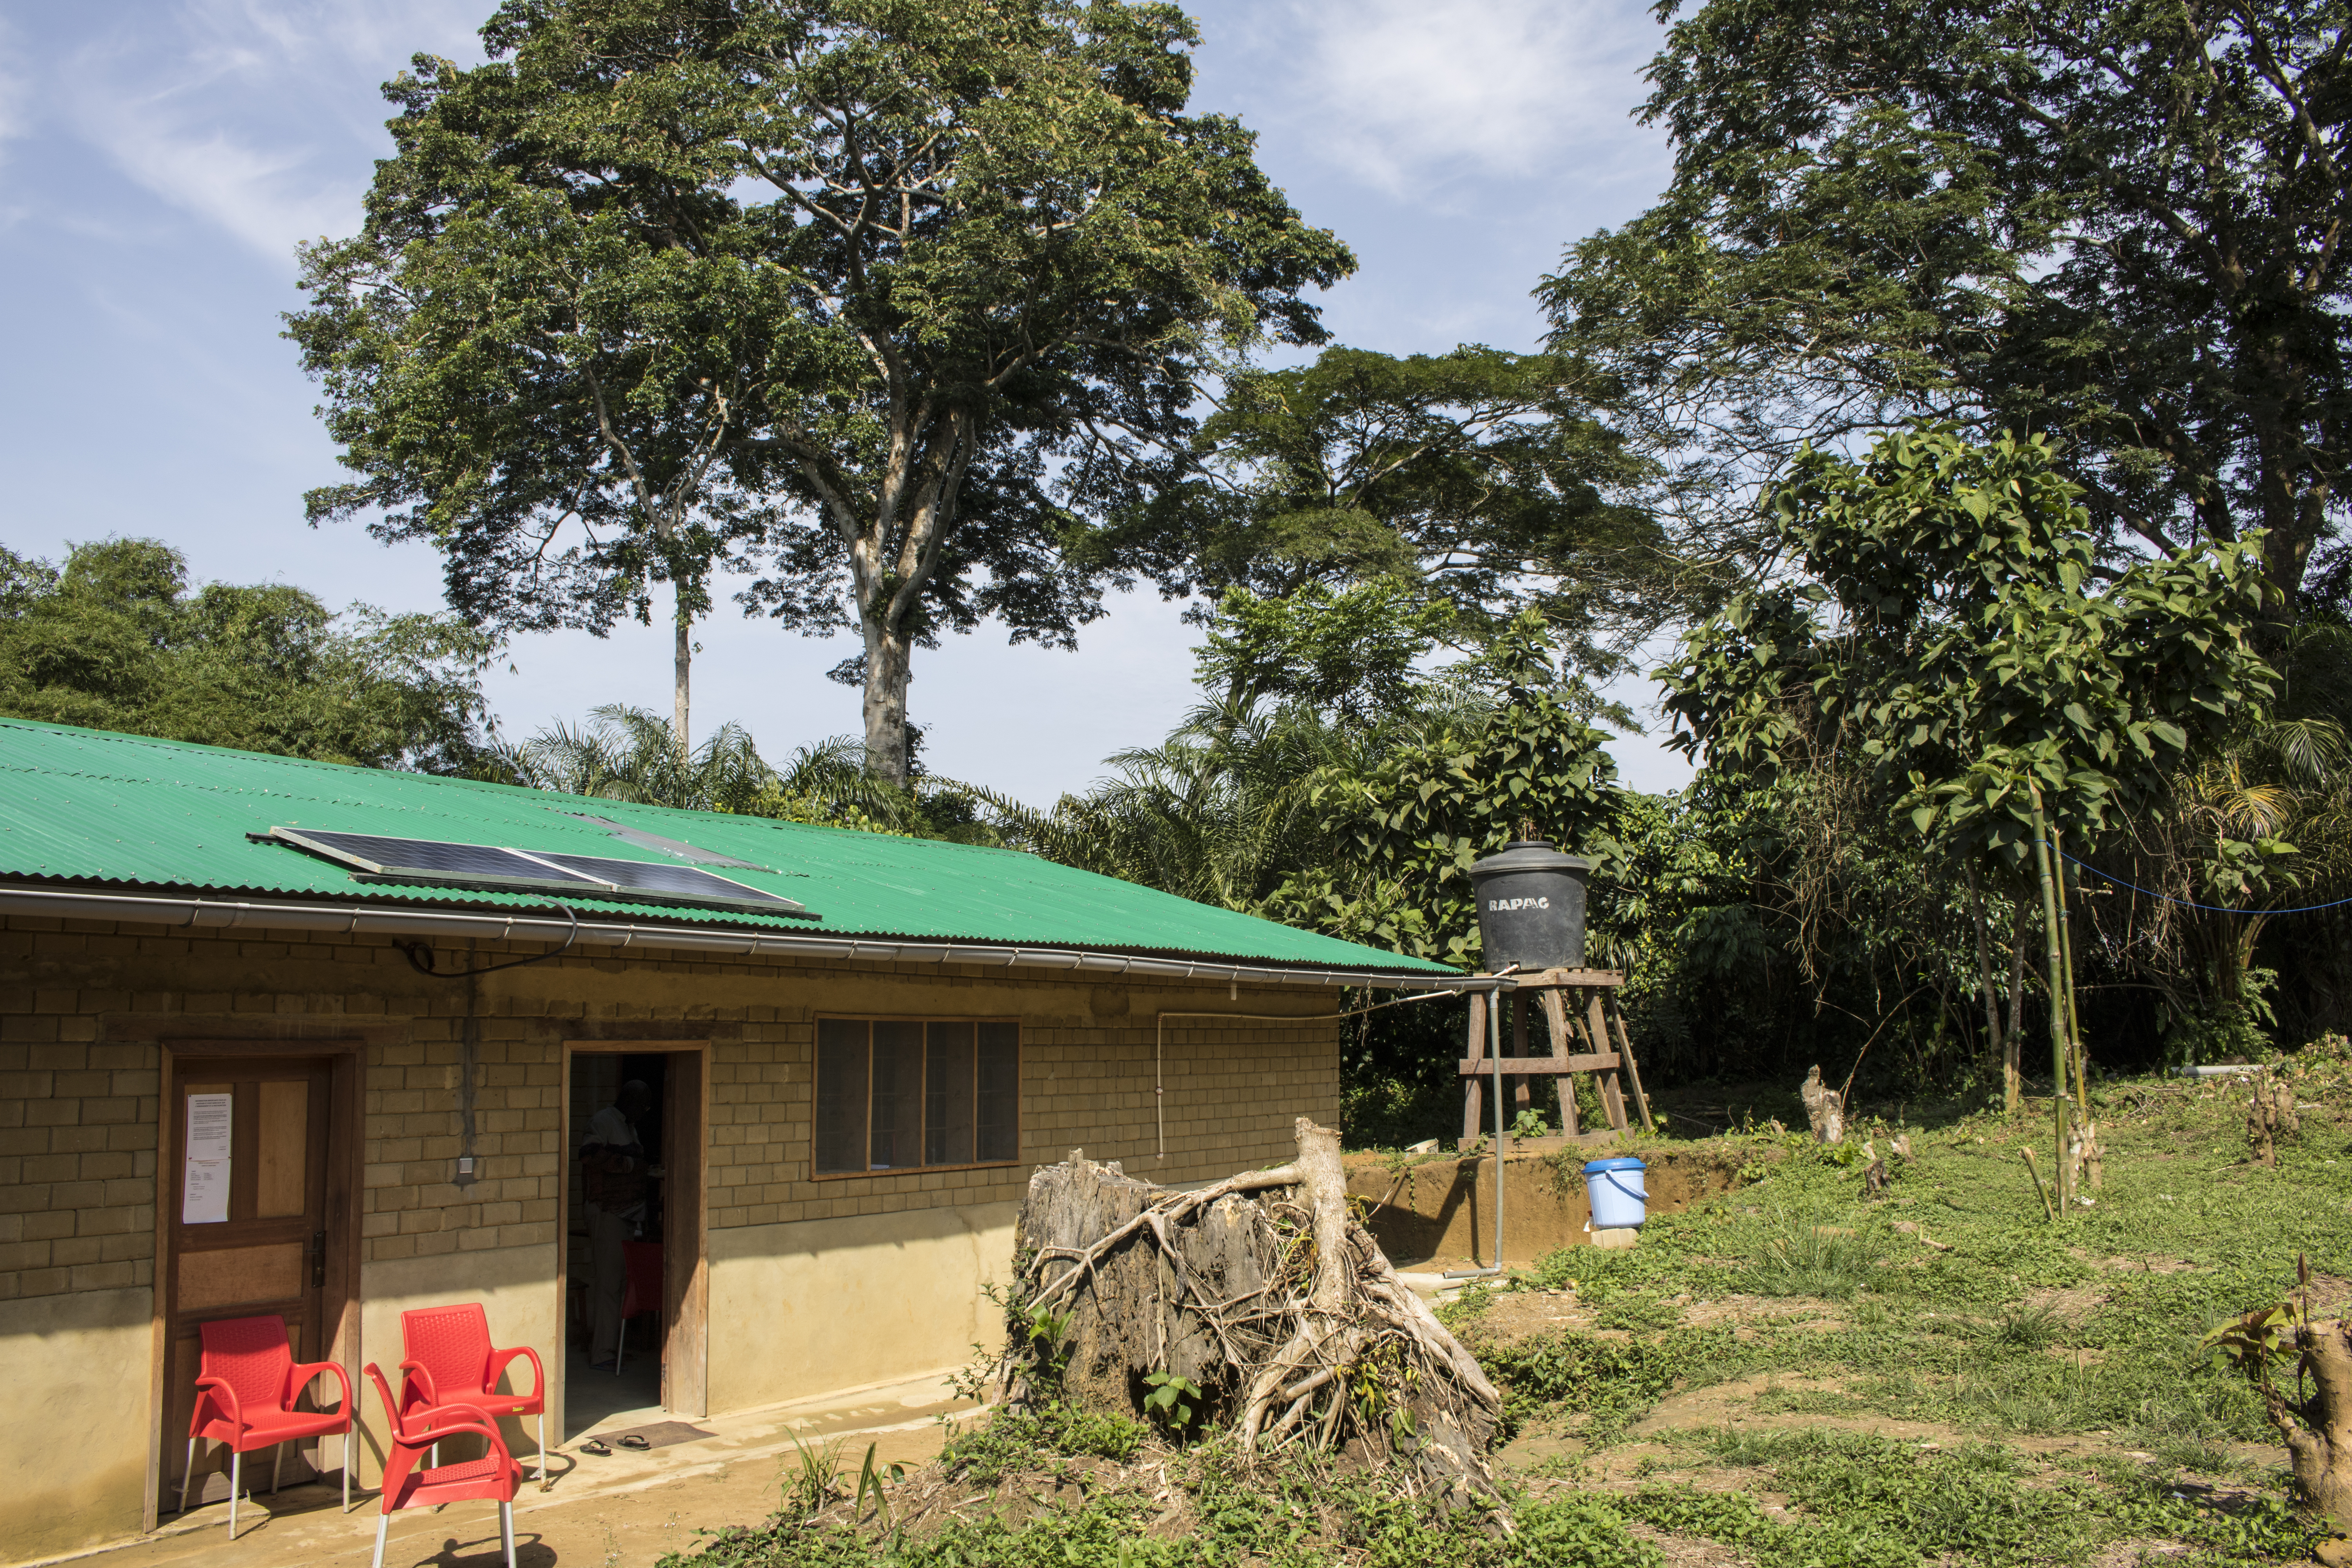 Built in 2018, this guesthouse provides a place for visitors to stay in Monkoto, Salonga's headquarters. (Photo by Molly Bergen/WCS, WWF, WRI)